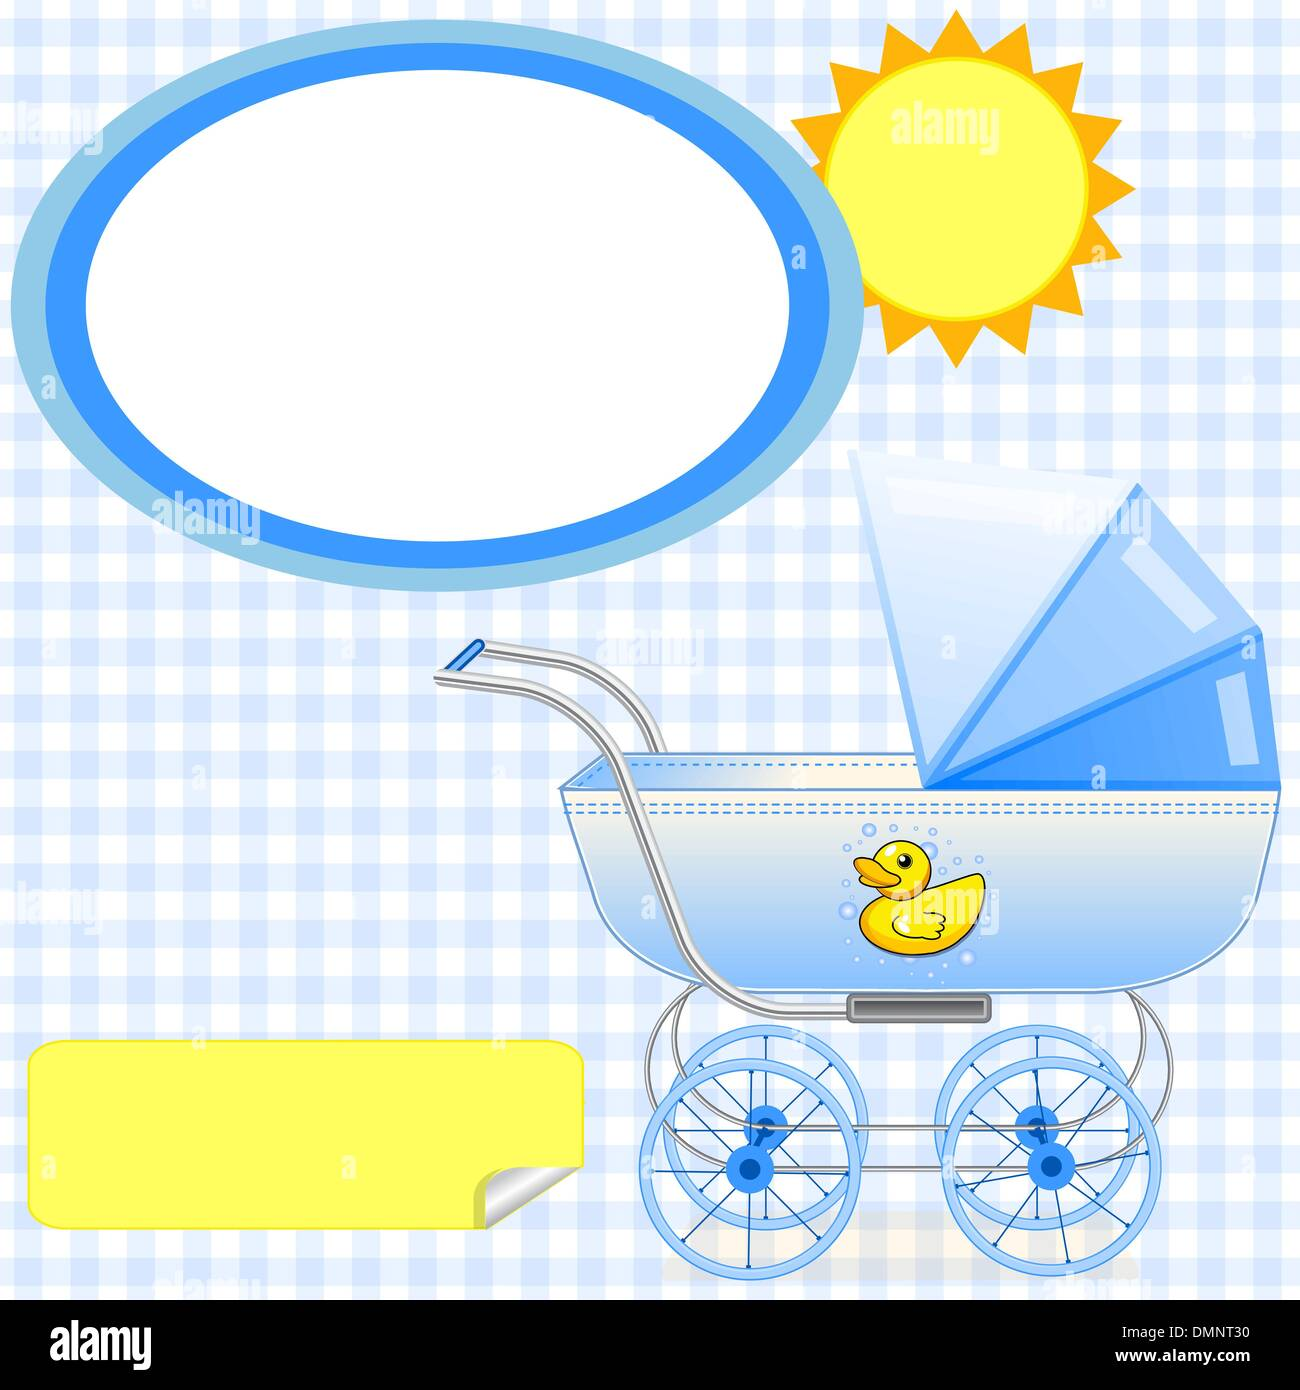 Buggy Baby Stockfotos & Buggy Baby Bilder - Seite 73 - Alamy